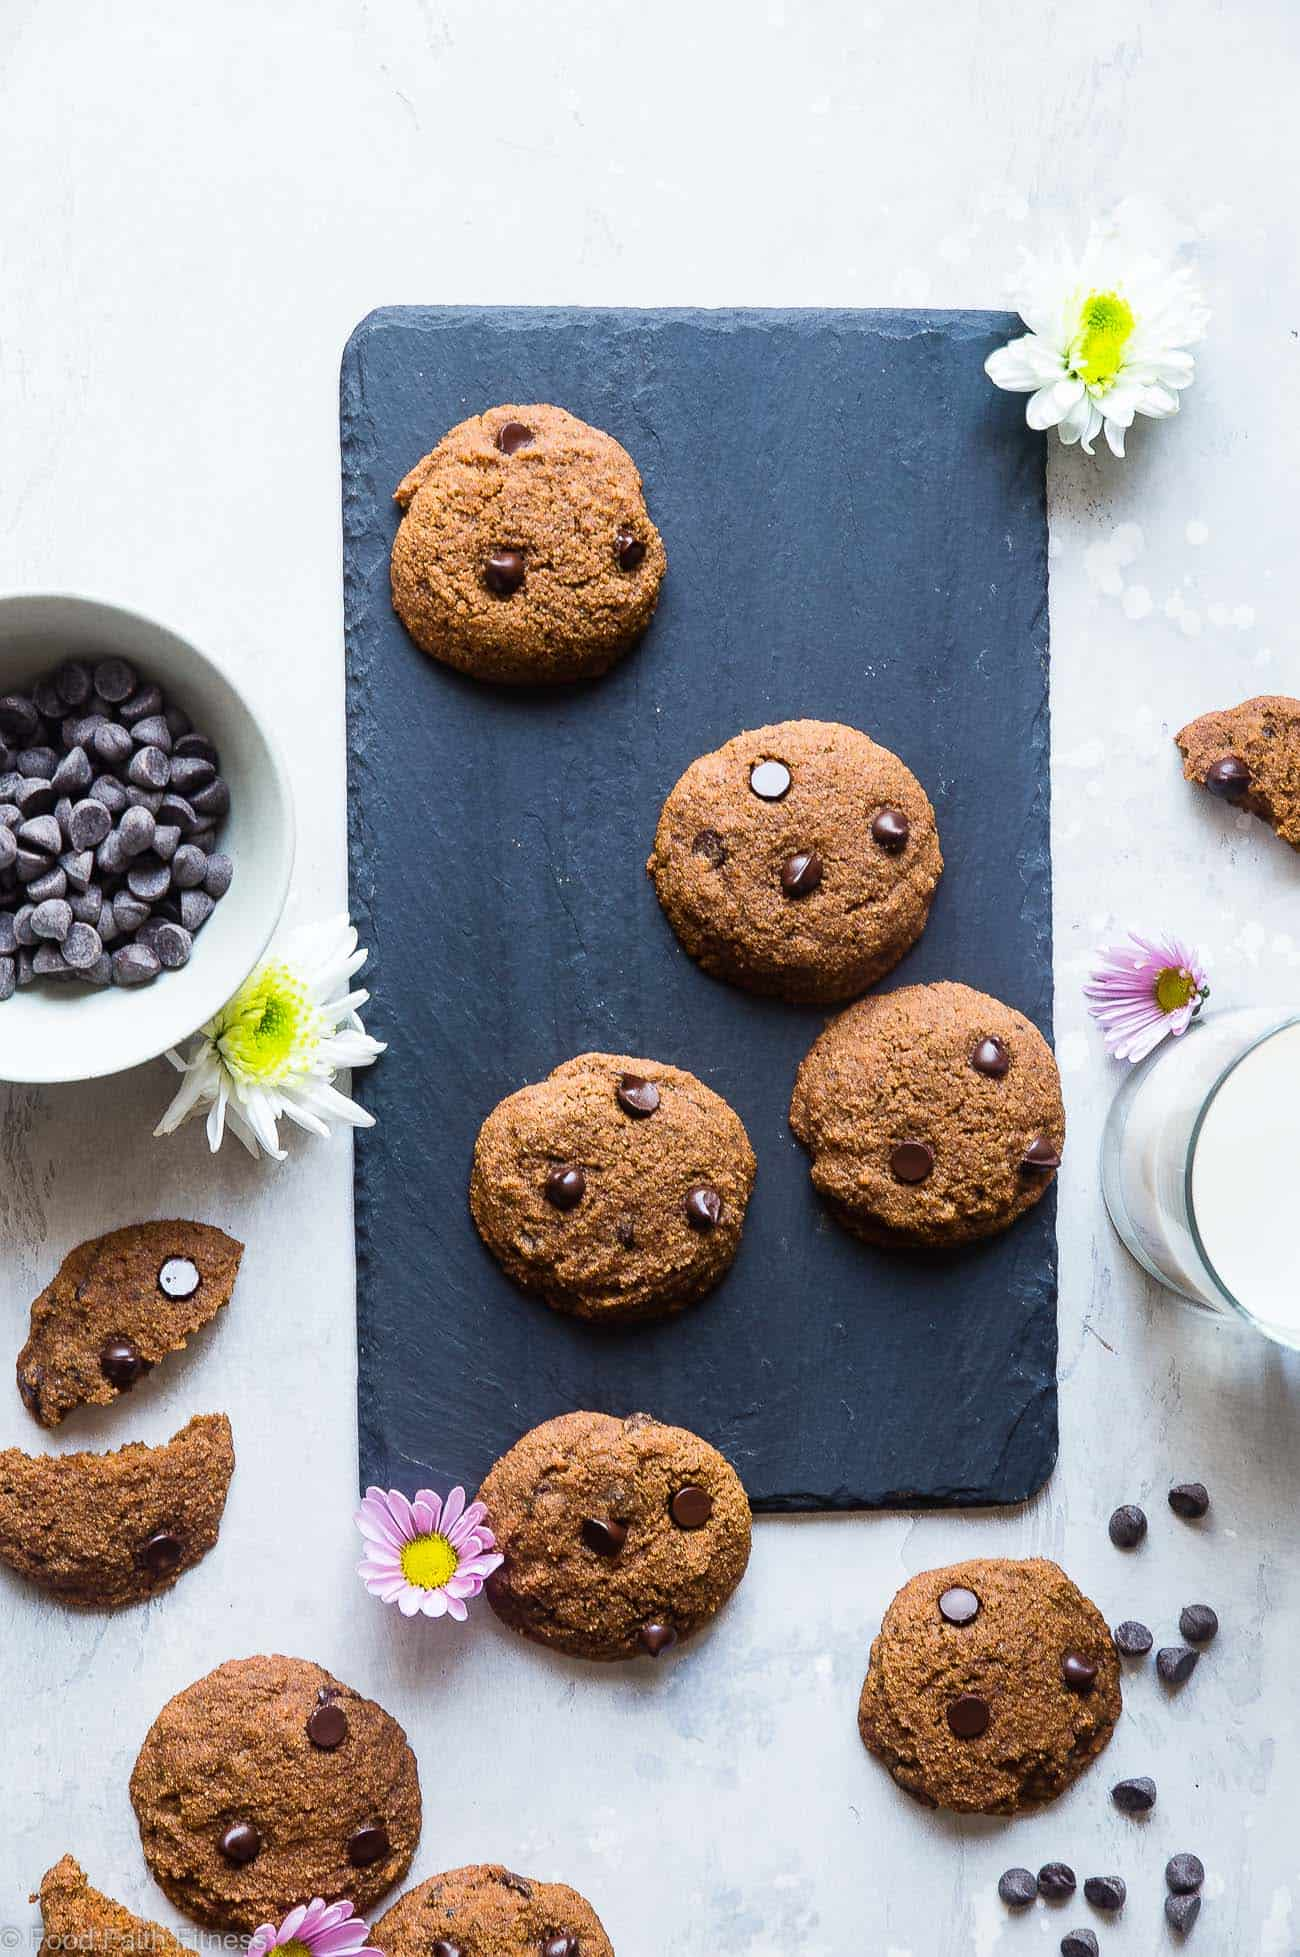 Paleo Coconut Flour Chocolate Chip Cookies - These are the best coconut flour cookies! Paleo friendly cookies with coconut flour are buttery, soft, chewy and SO rich and chocolaty! You won't believe they are gluten, grain and refined sugar free! | Foodfaithfitness.com | @FoodFaithFit